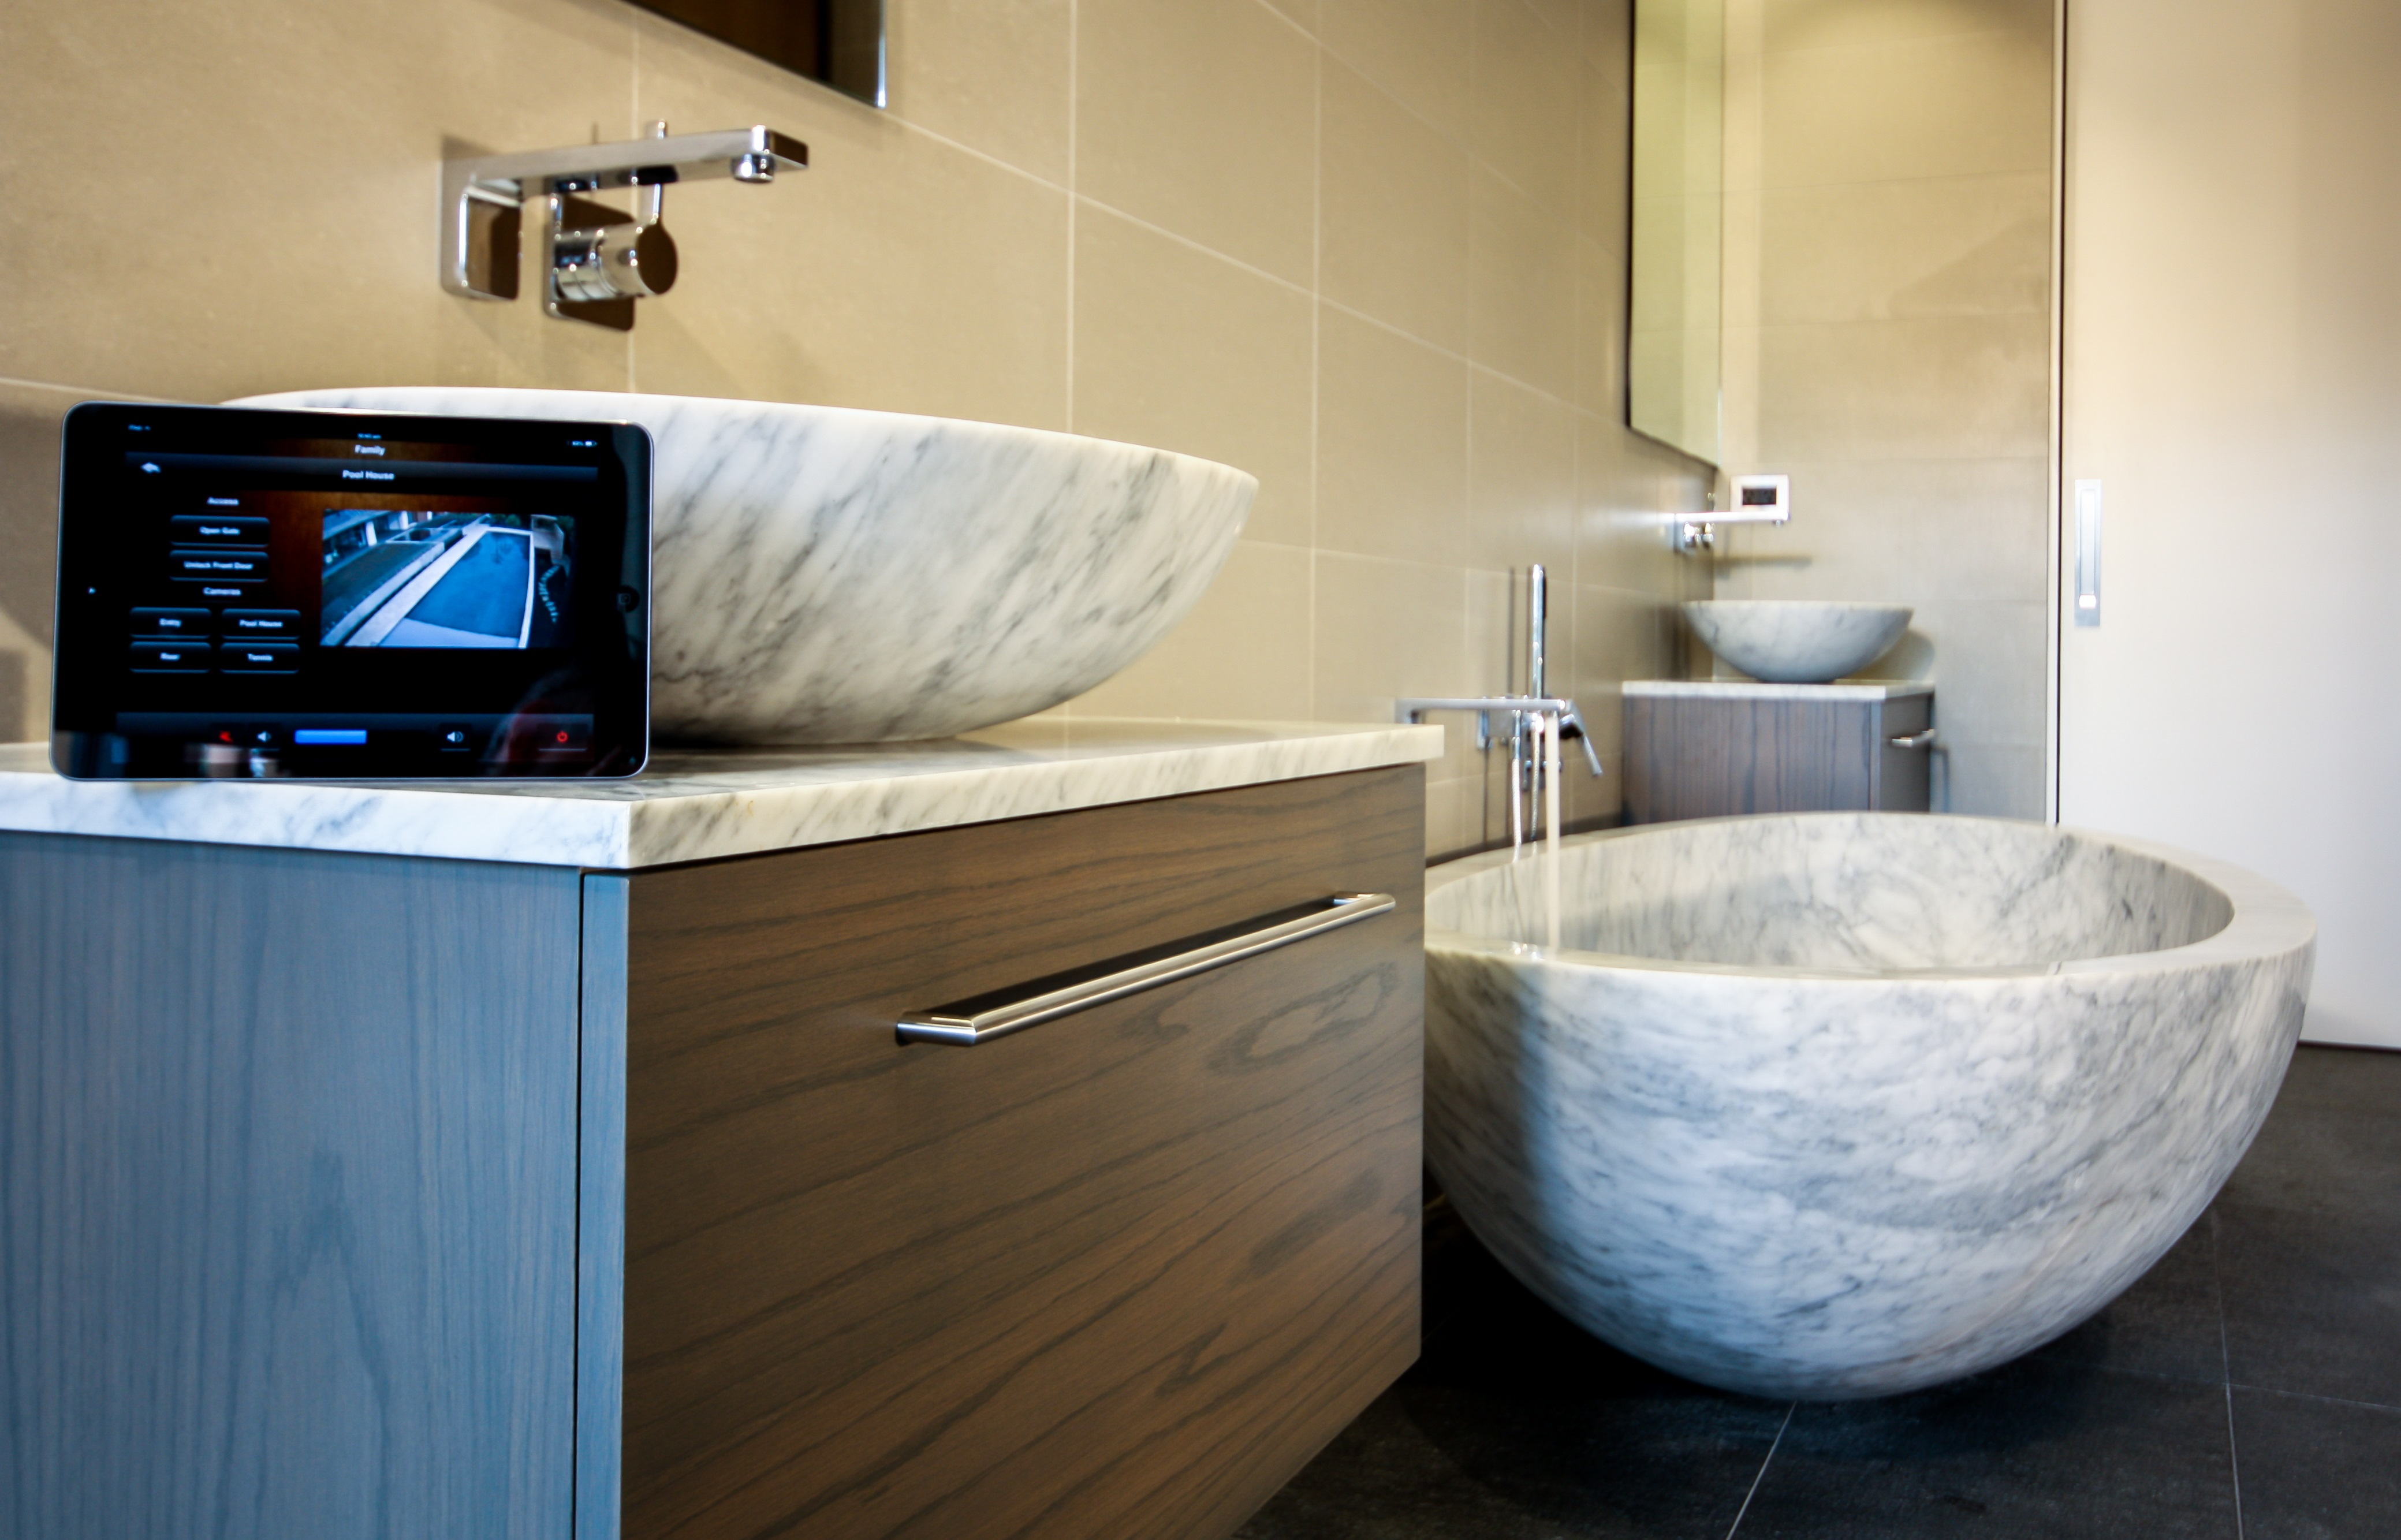 Different Electronics for Bathrooms